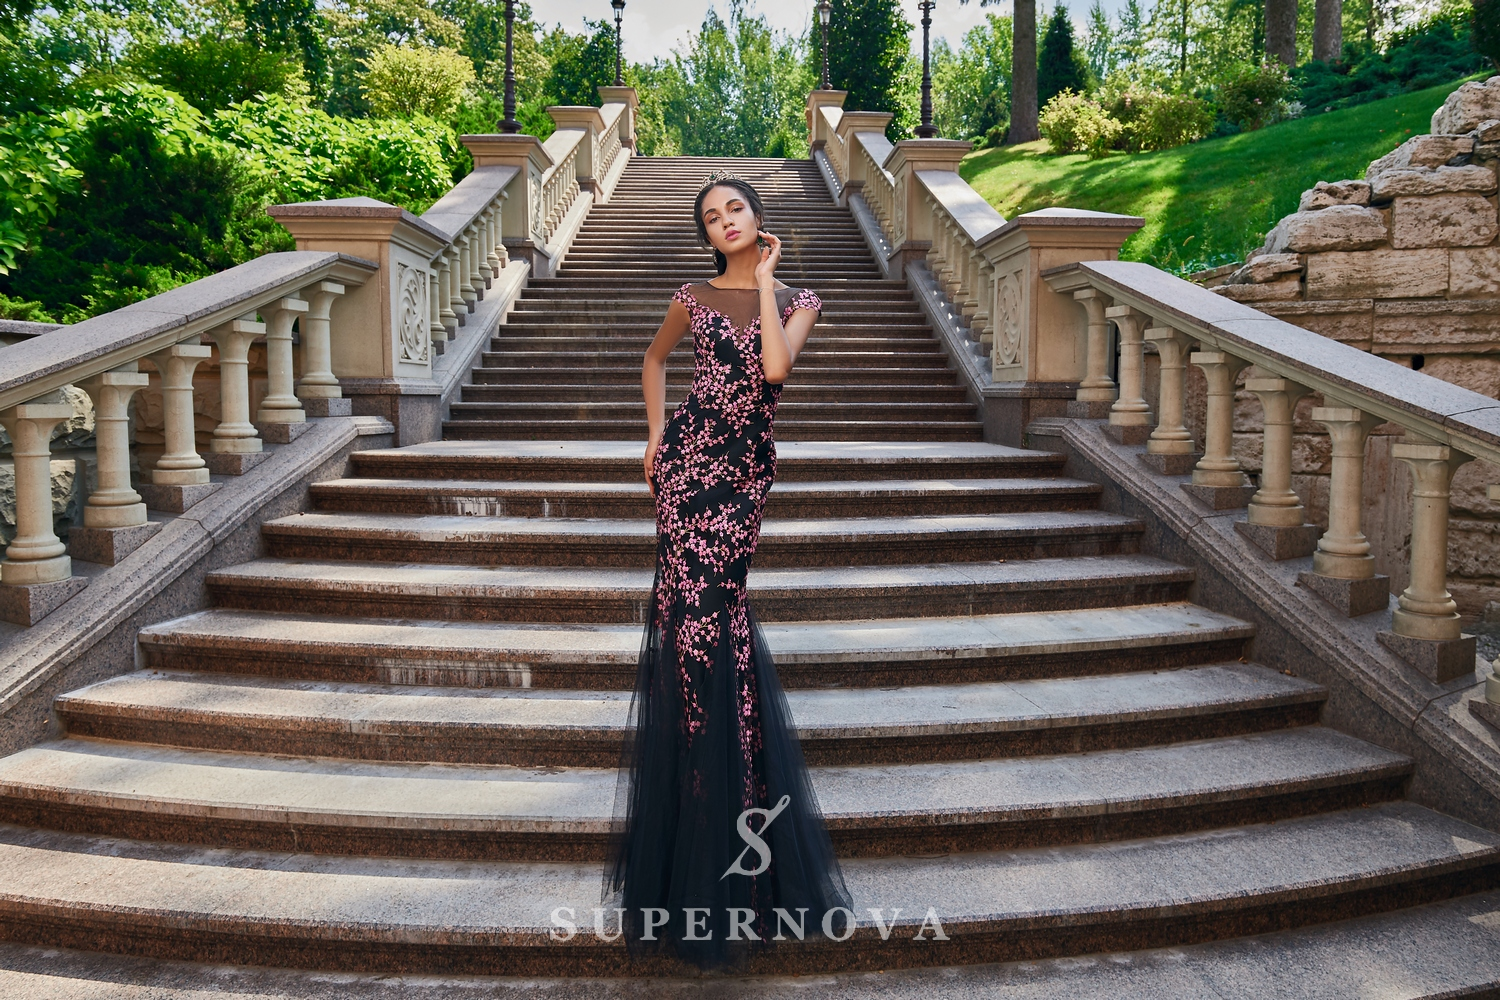 A close-fitting guipure evening dress on wholesale from Super Nova-1